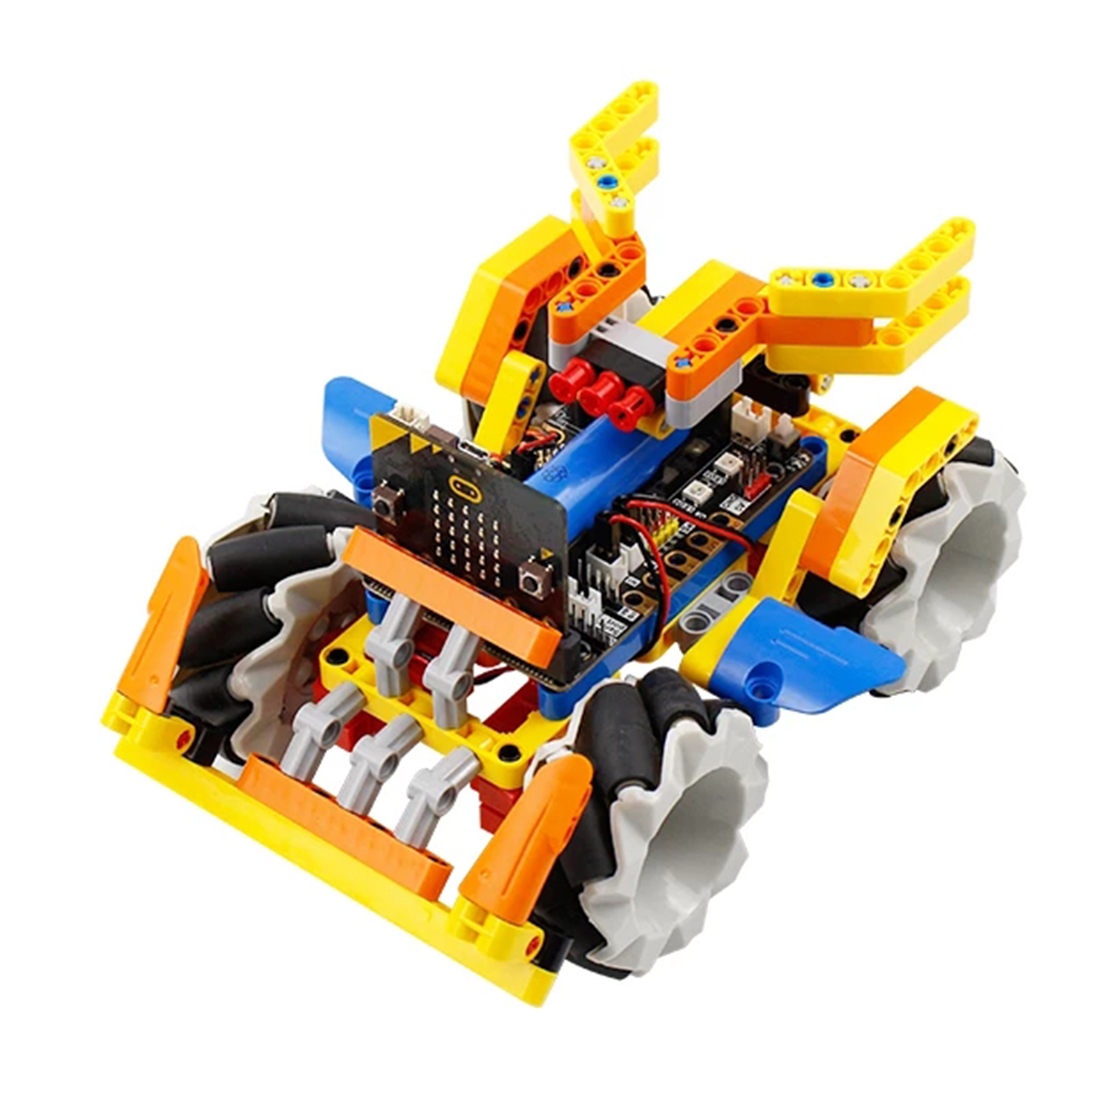 Program Intelligent Robot Building Block Kit Mecanum Wheel Robot Car For Micro: Bit  Programmable Toys For Kids Adults Gift